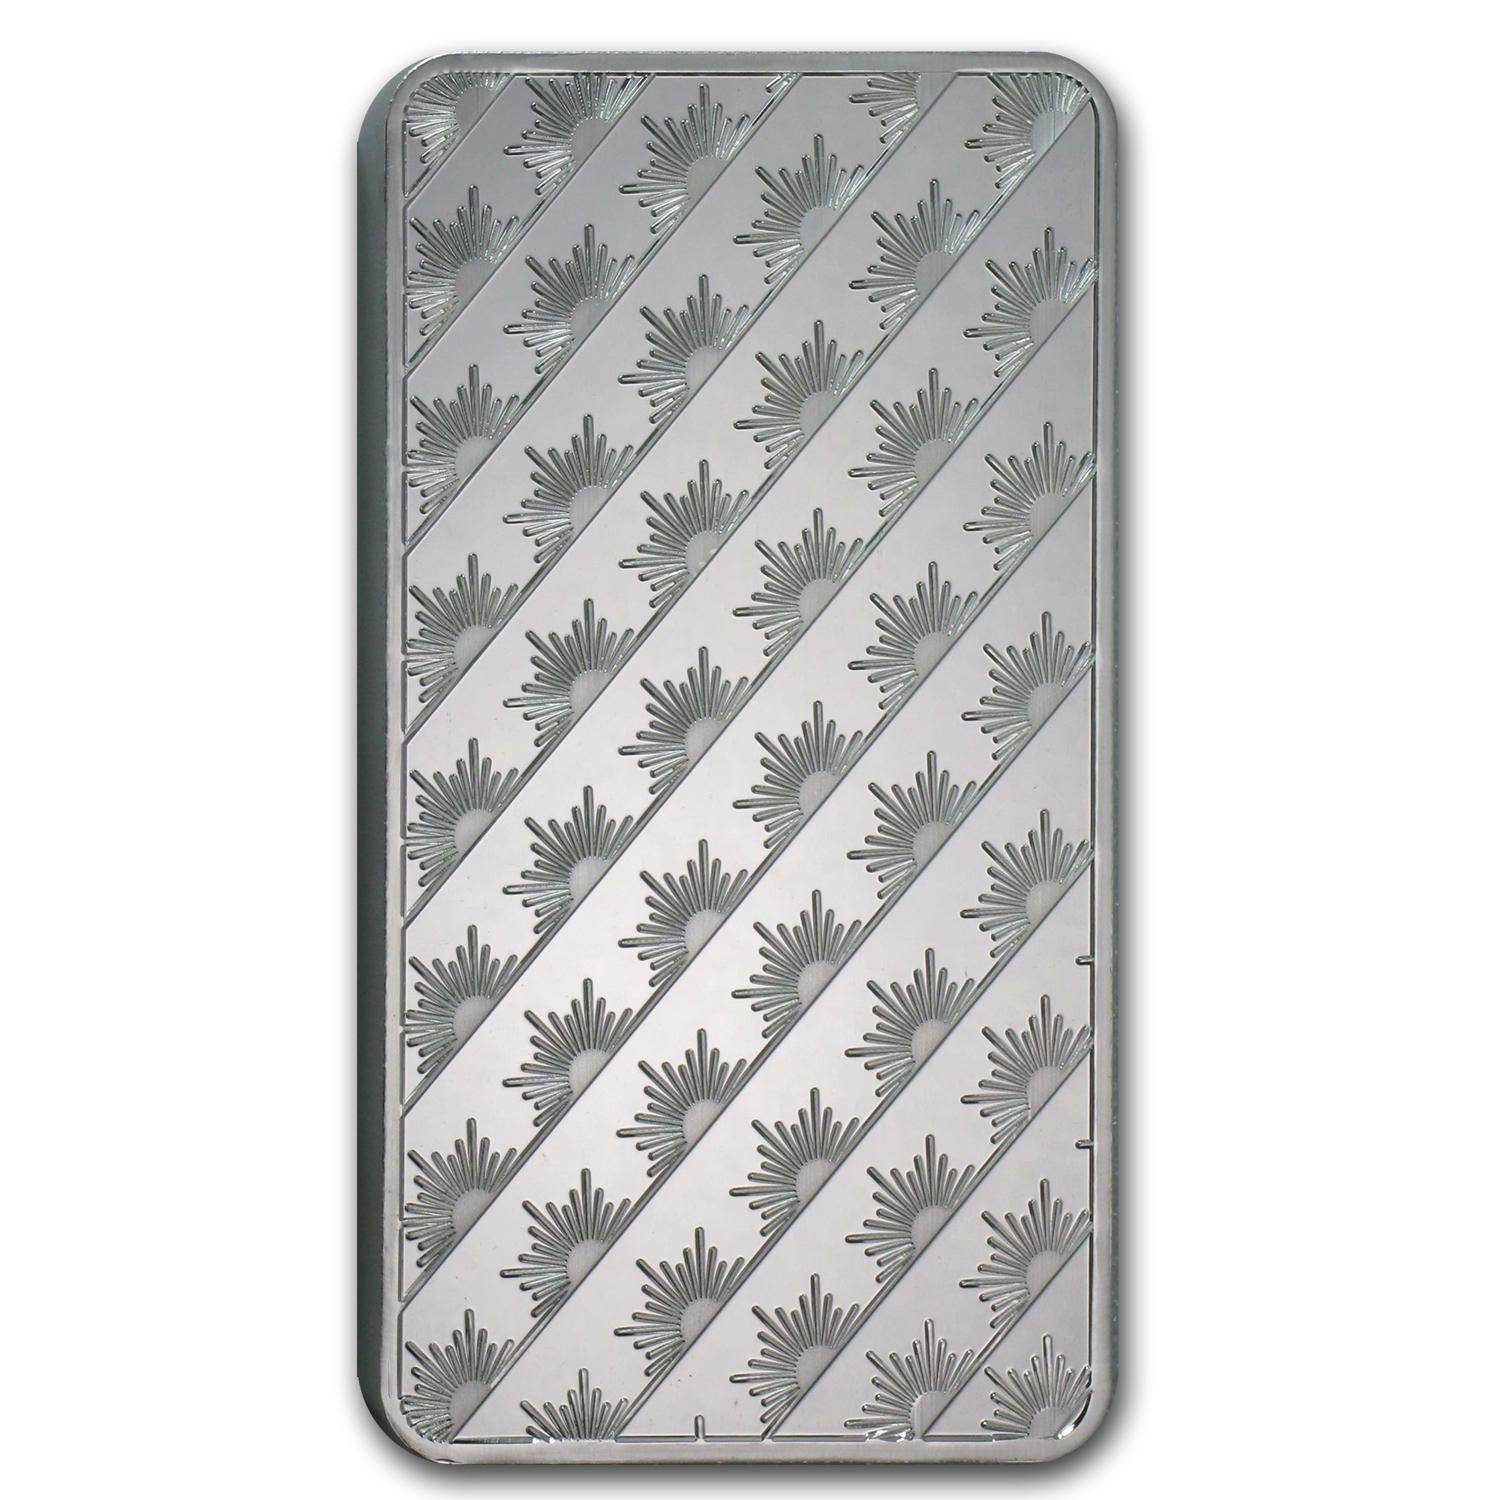 10 oz Silver Bar - Sunshine (Original)